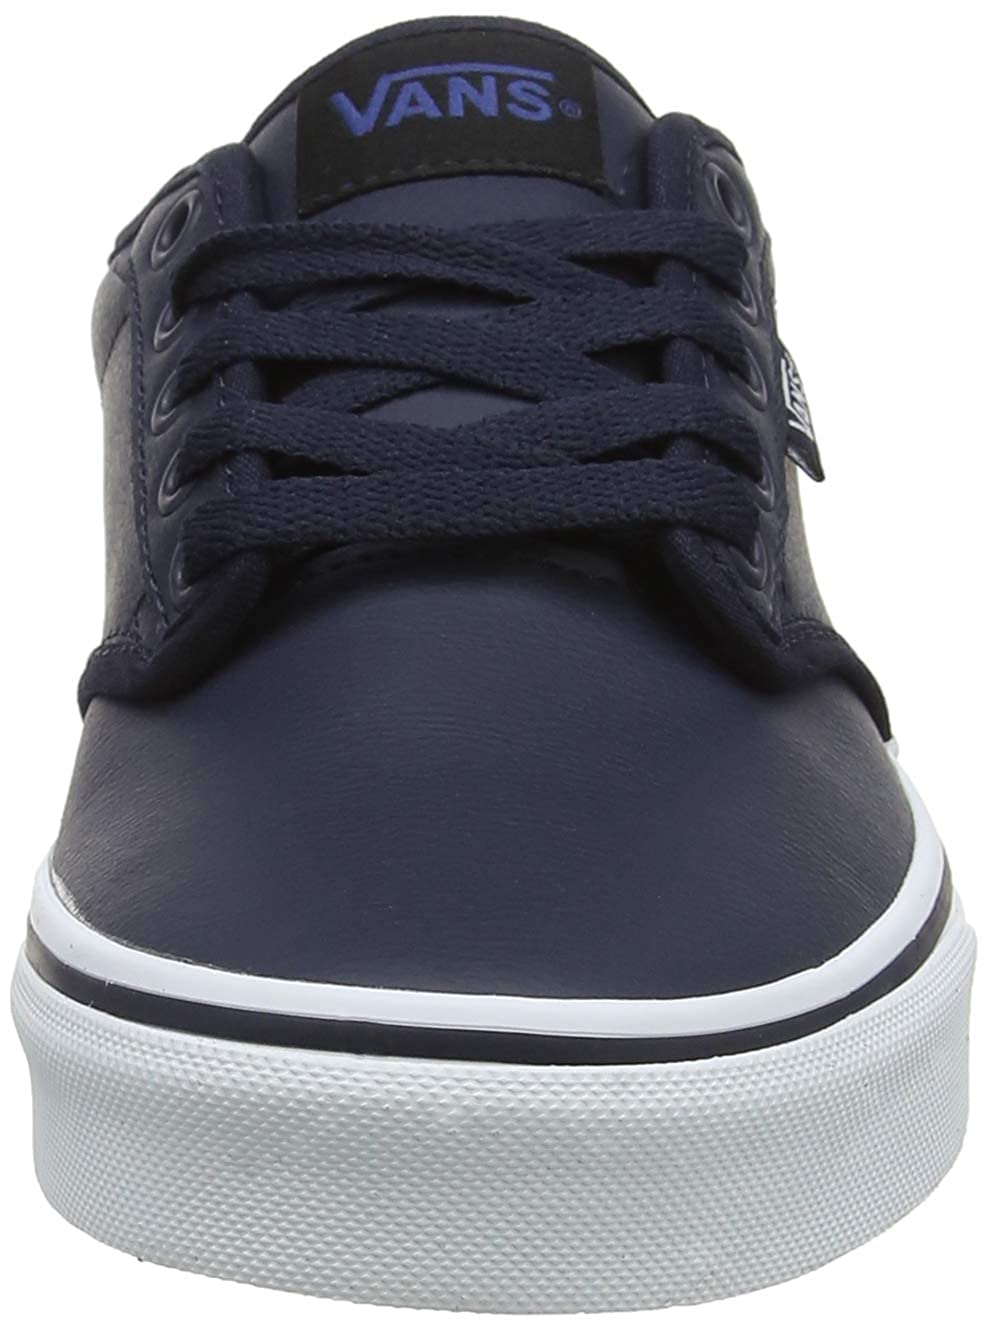 Vans Vans Vans Herren Atwood Synthetic Leather Turnschuhe 3a5645